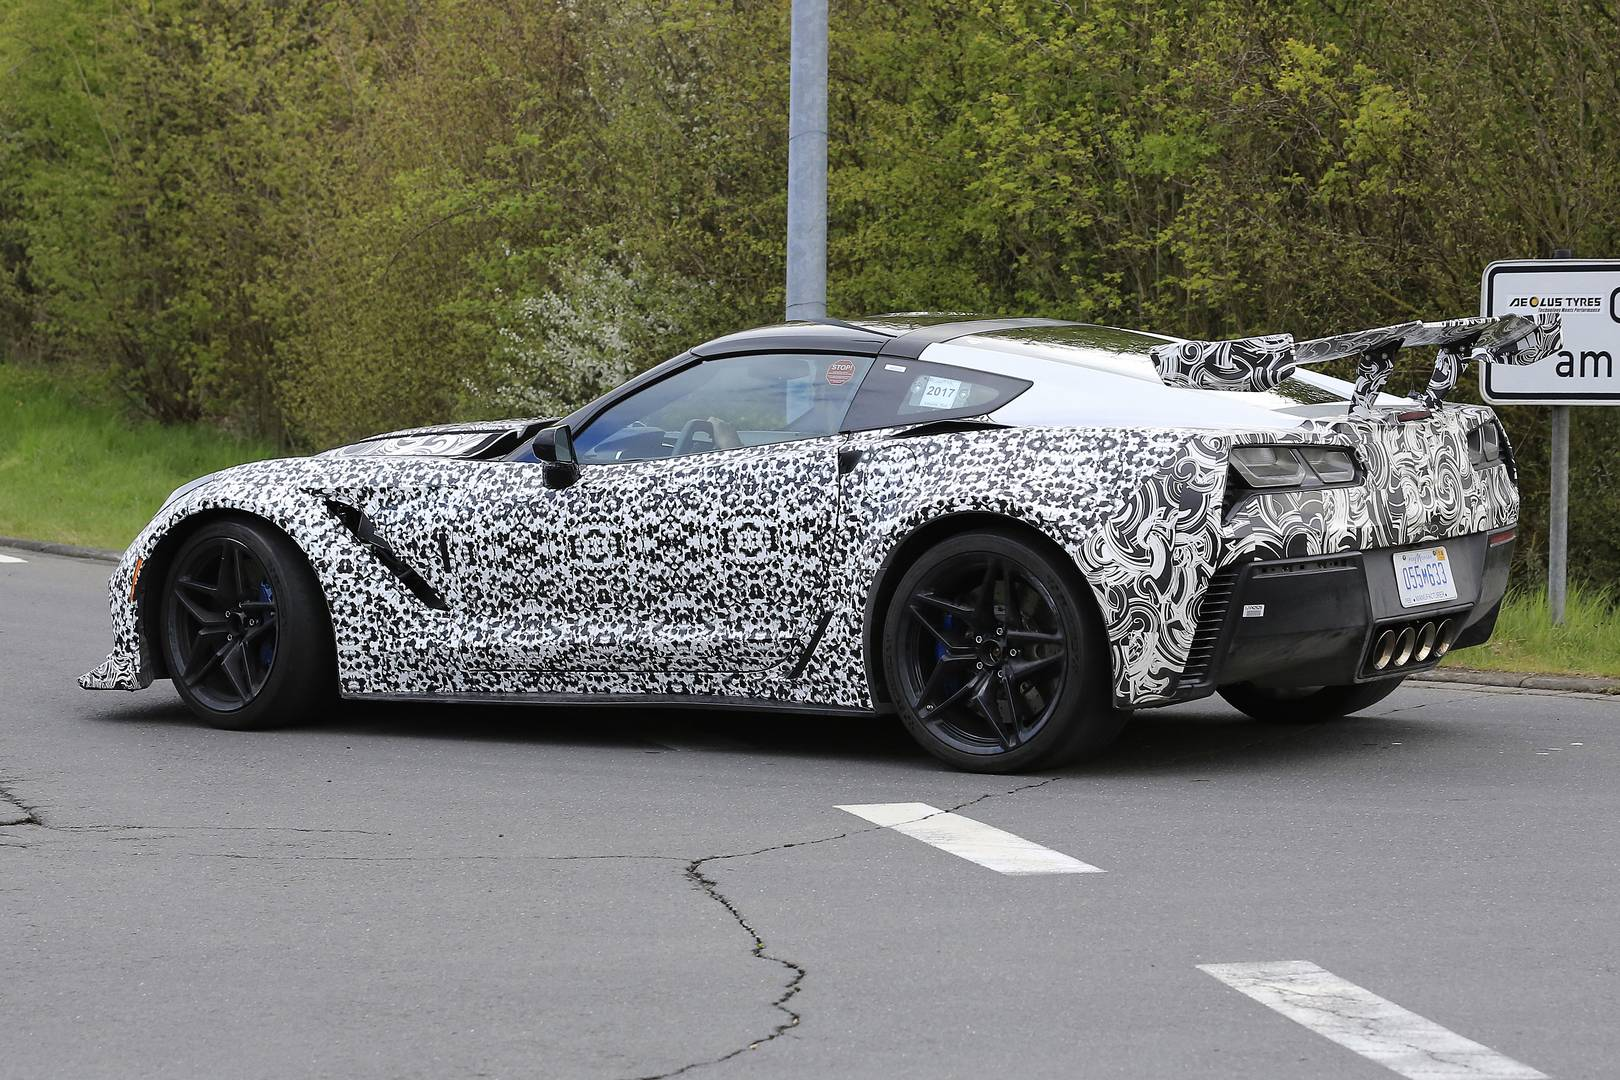 2018 Corvette Zr1 Newest Spy Shots Gtspirit